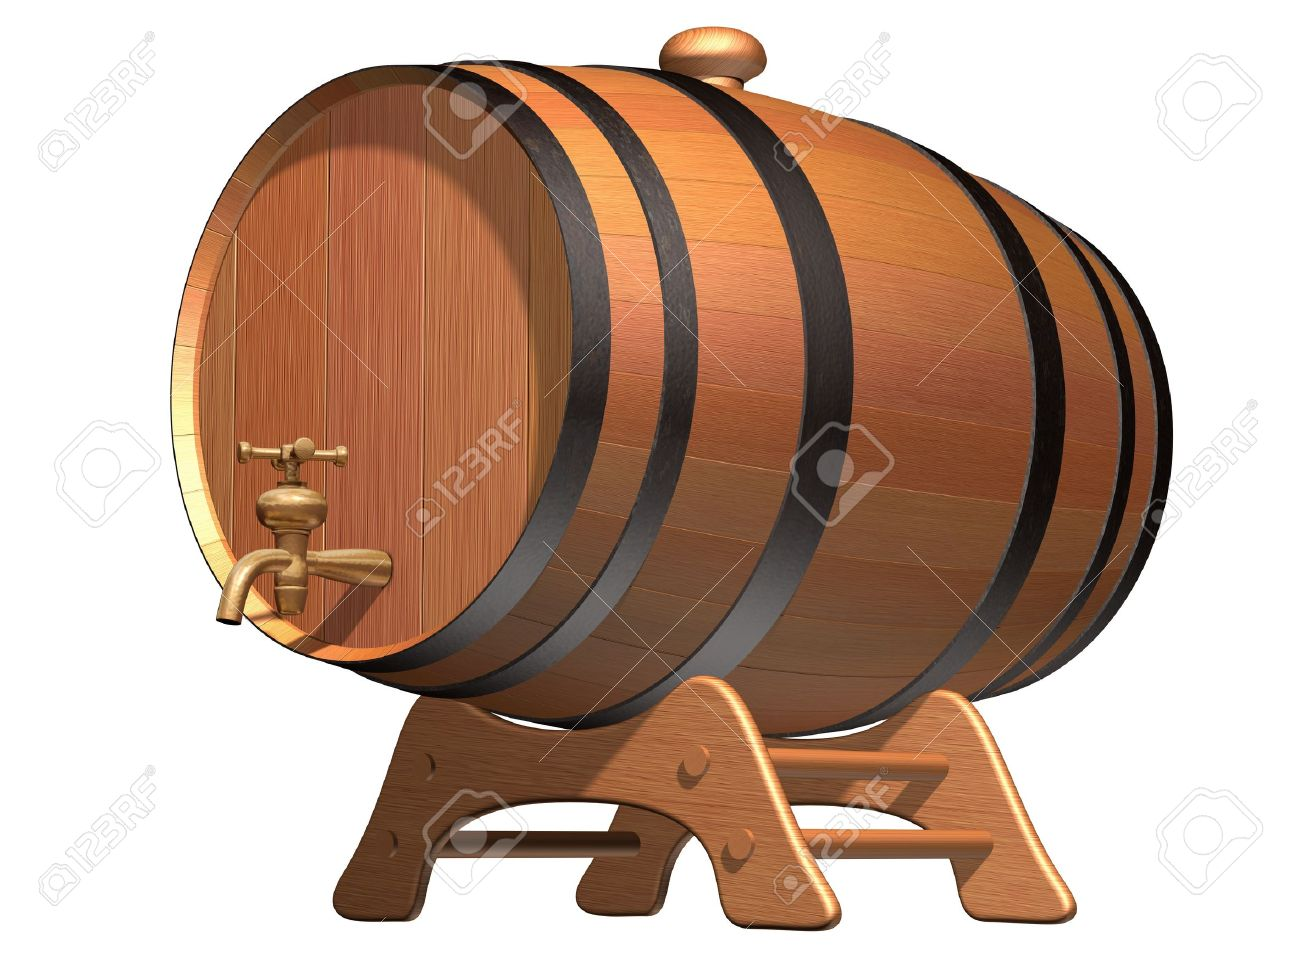 Isolated Illustration Of A Wooden Beer Barrel With A Brass Tap.